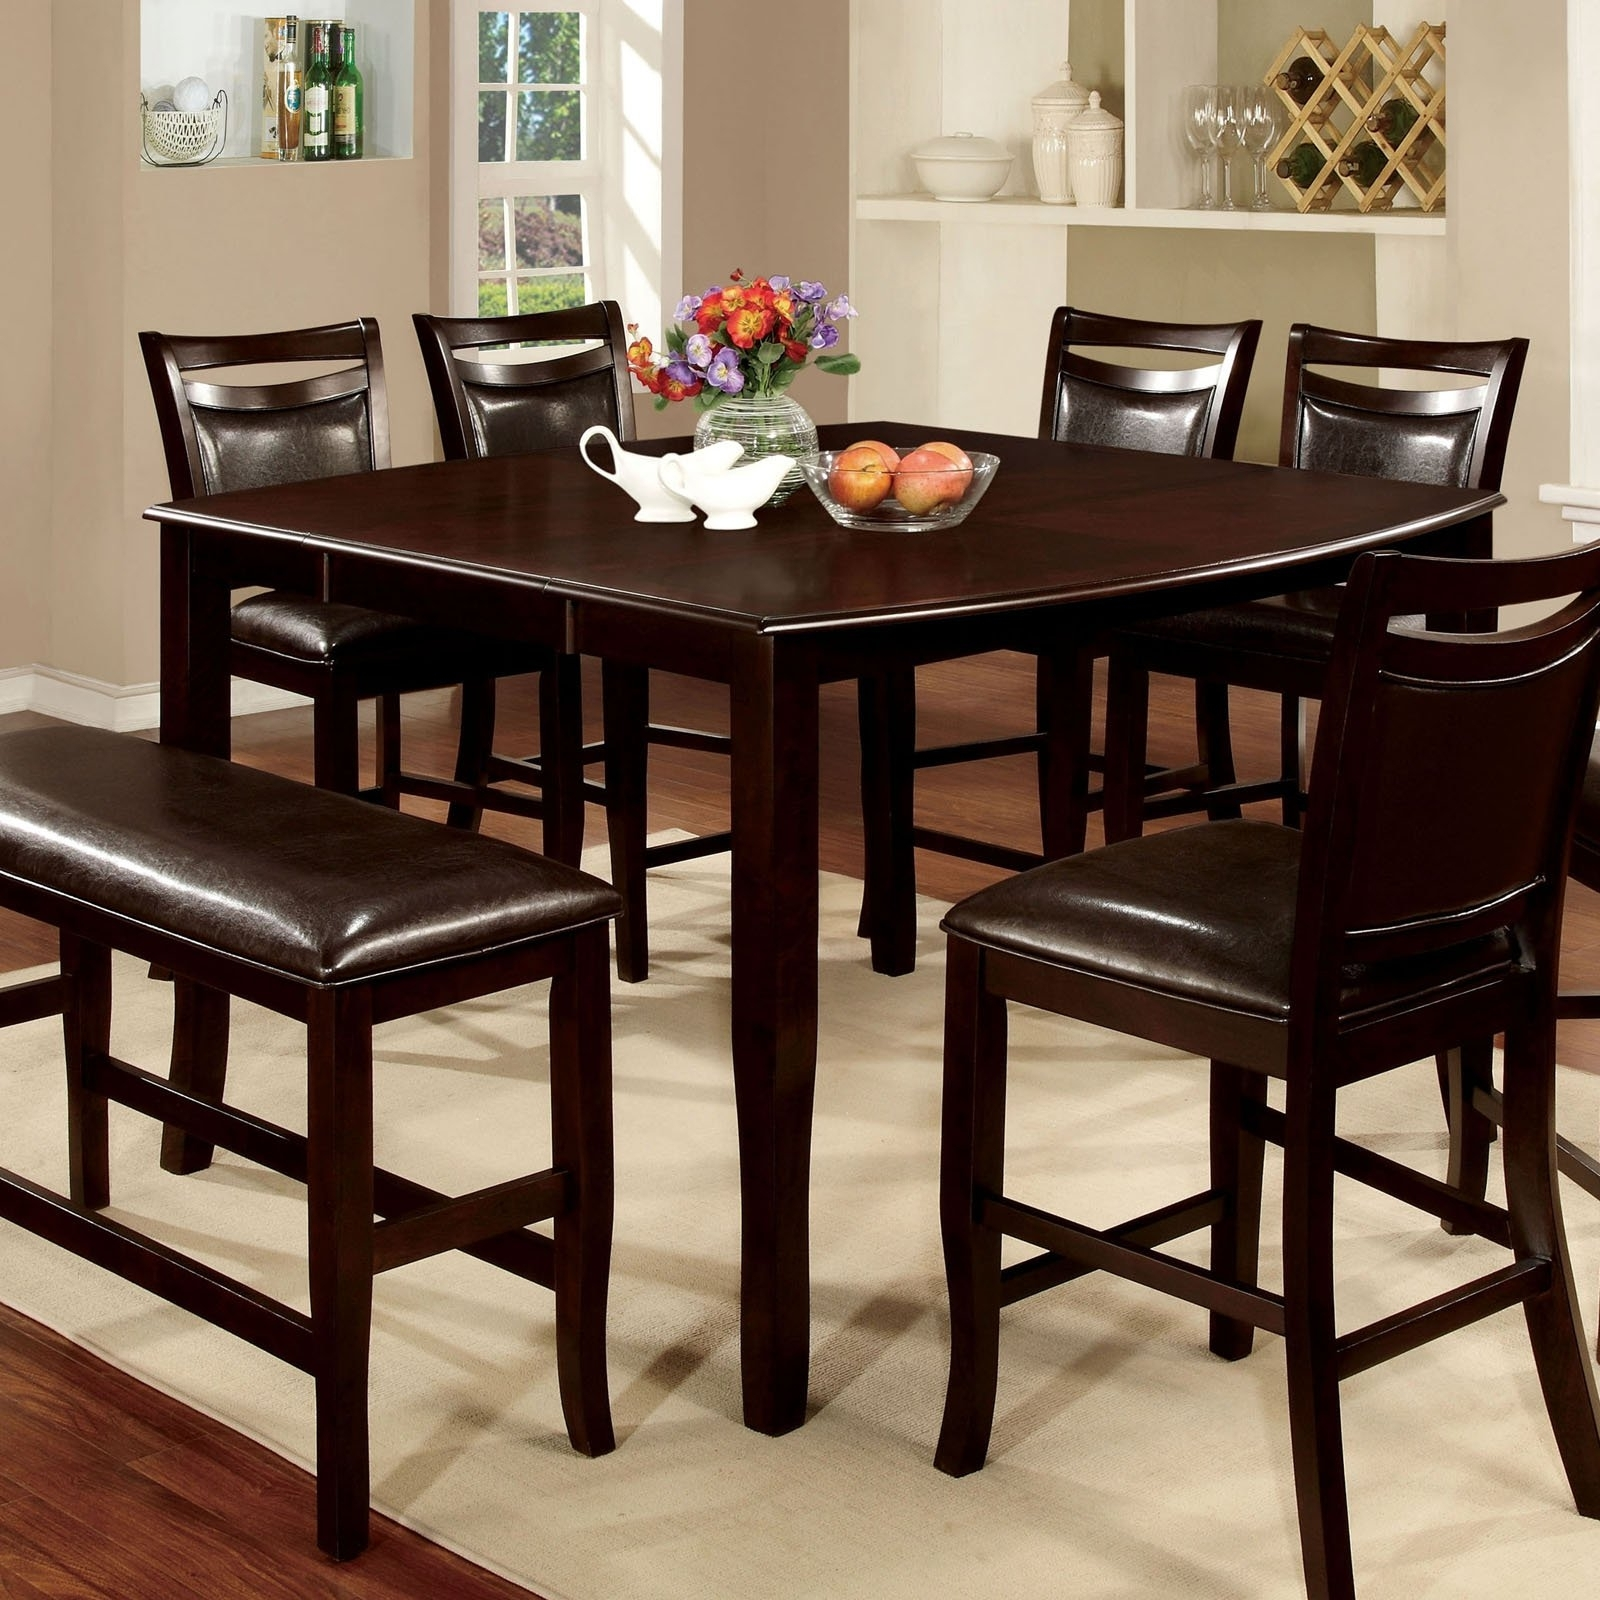 Espresso Rectangular Dining Table – Dining Tables Ideas Throughout 2017 Lindy Espresso Rectangle Dining Tables (View 8 of 25)